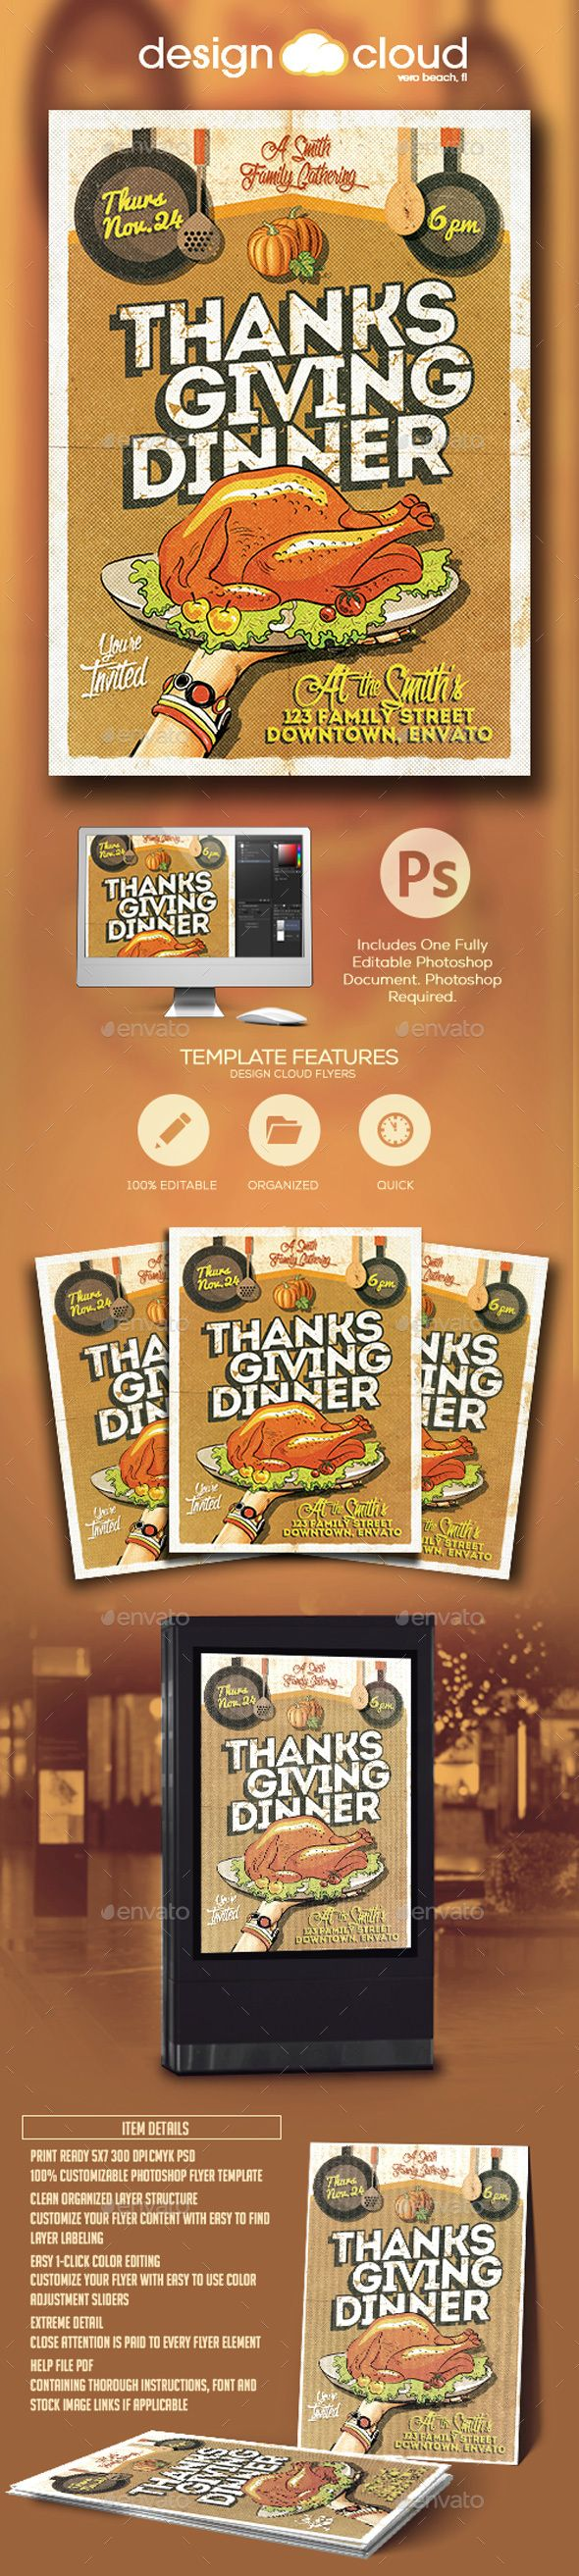 thanksgiving dinner invitation flyer template by design cloud the